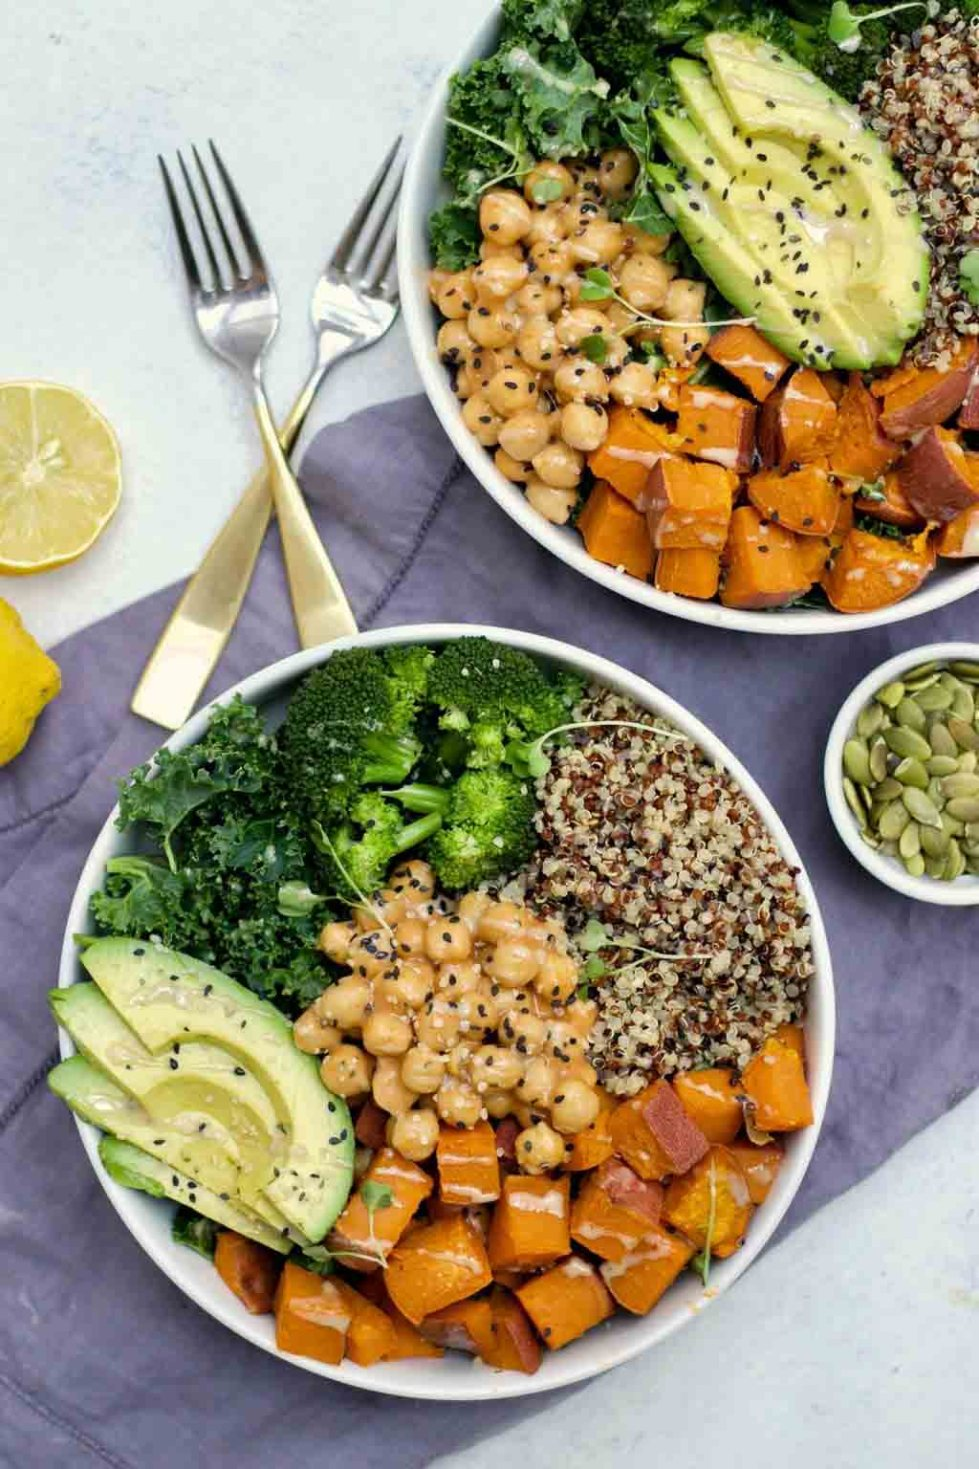 This sweet potato chickpea buddha bowl recipe is easy, delicious, and perfect for meal prep!